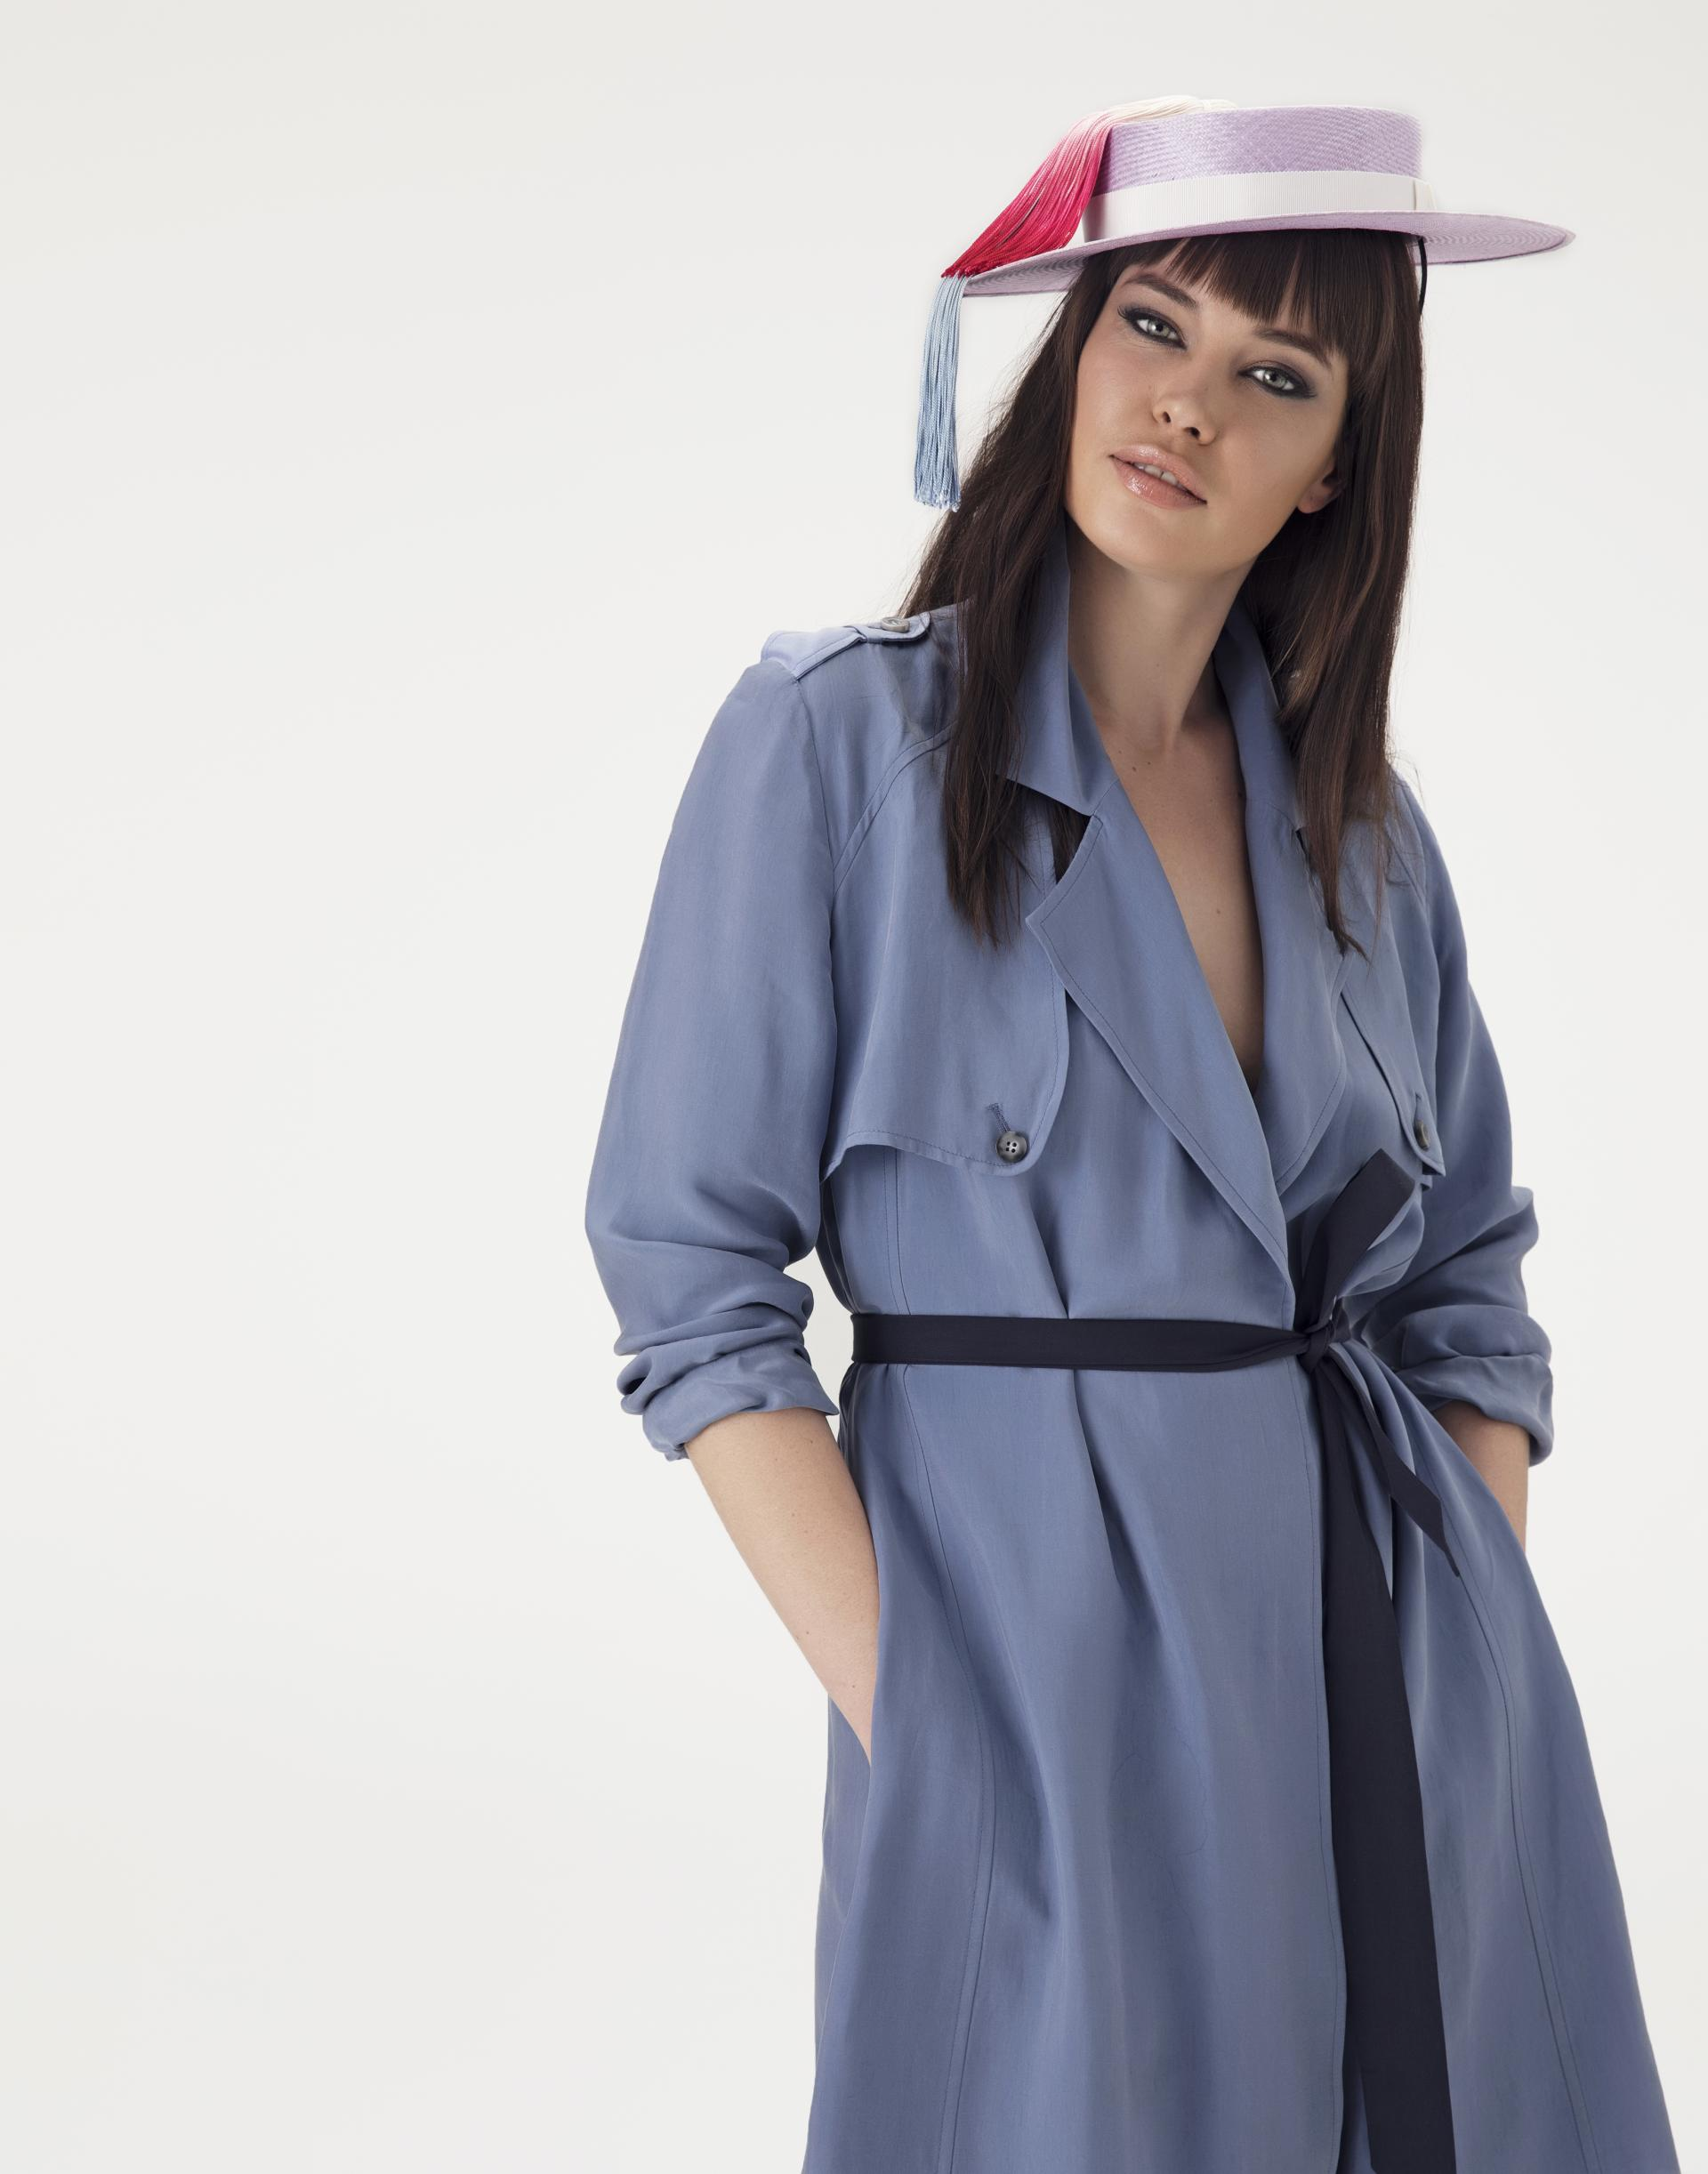 Interview with Irish Milliner Freya Oatway - FAO Millinery